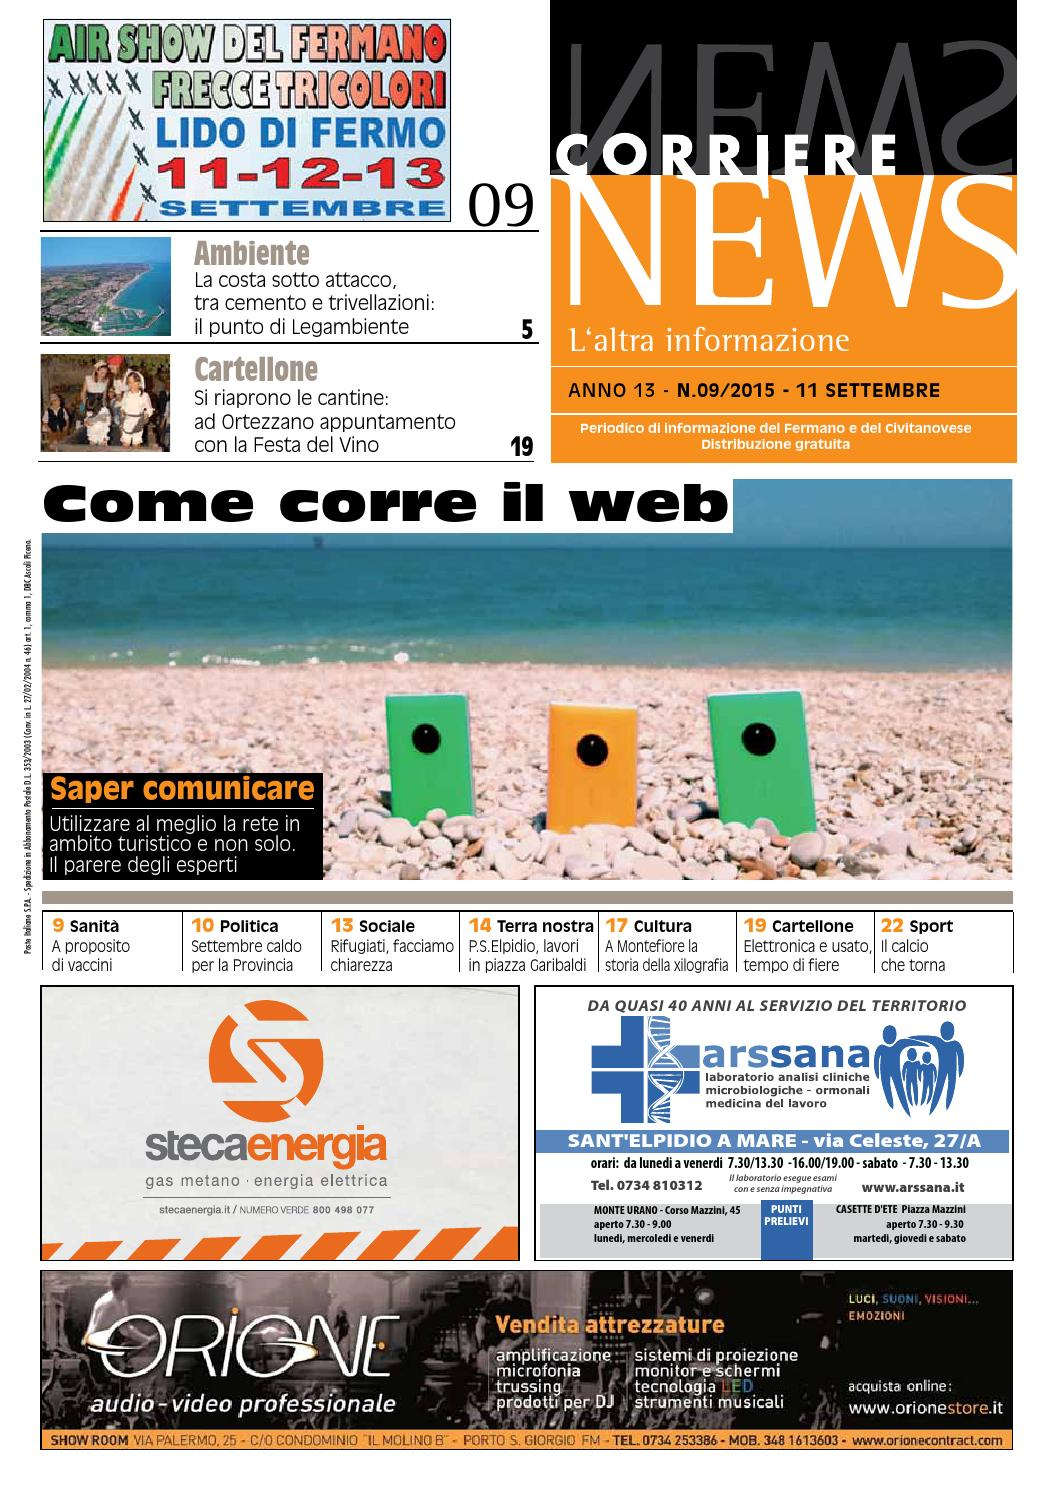 2187b050c3 CORRIERE NEWS SETTEMBRE 2015 by Corriere News - issuu